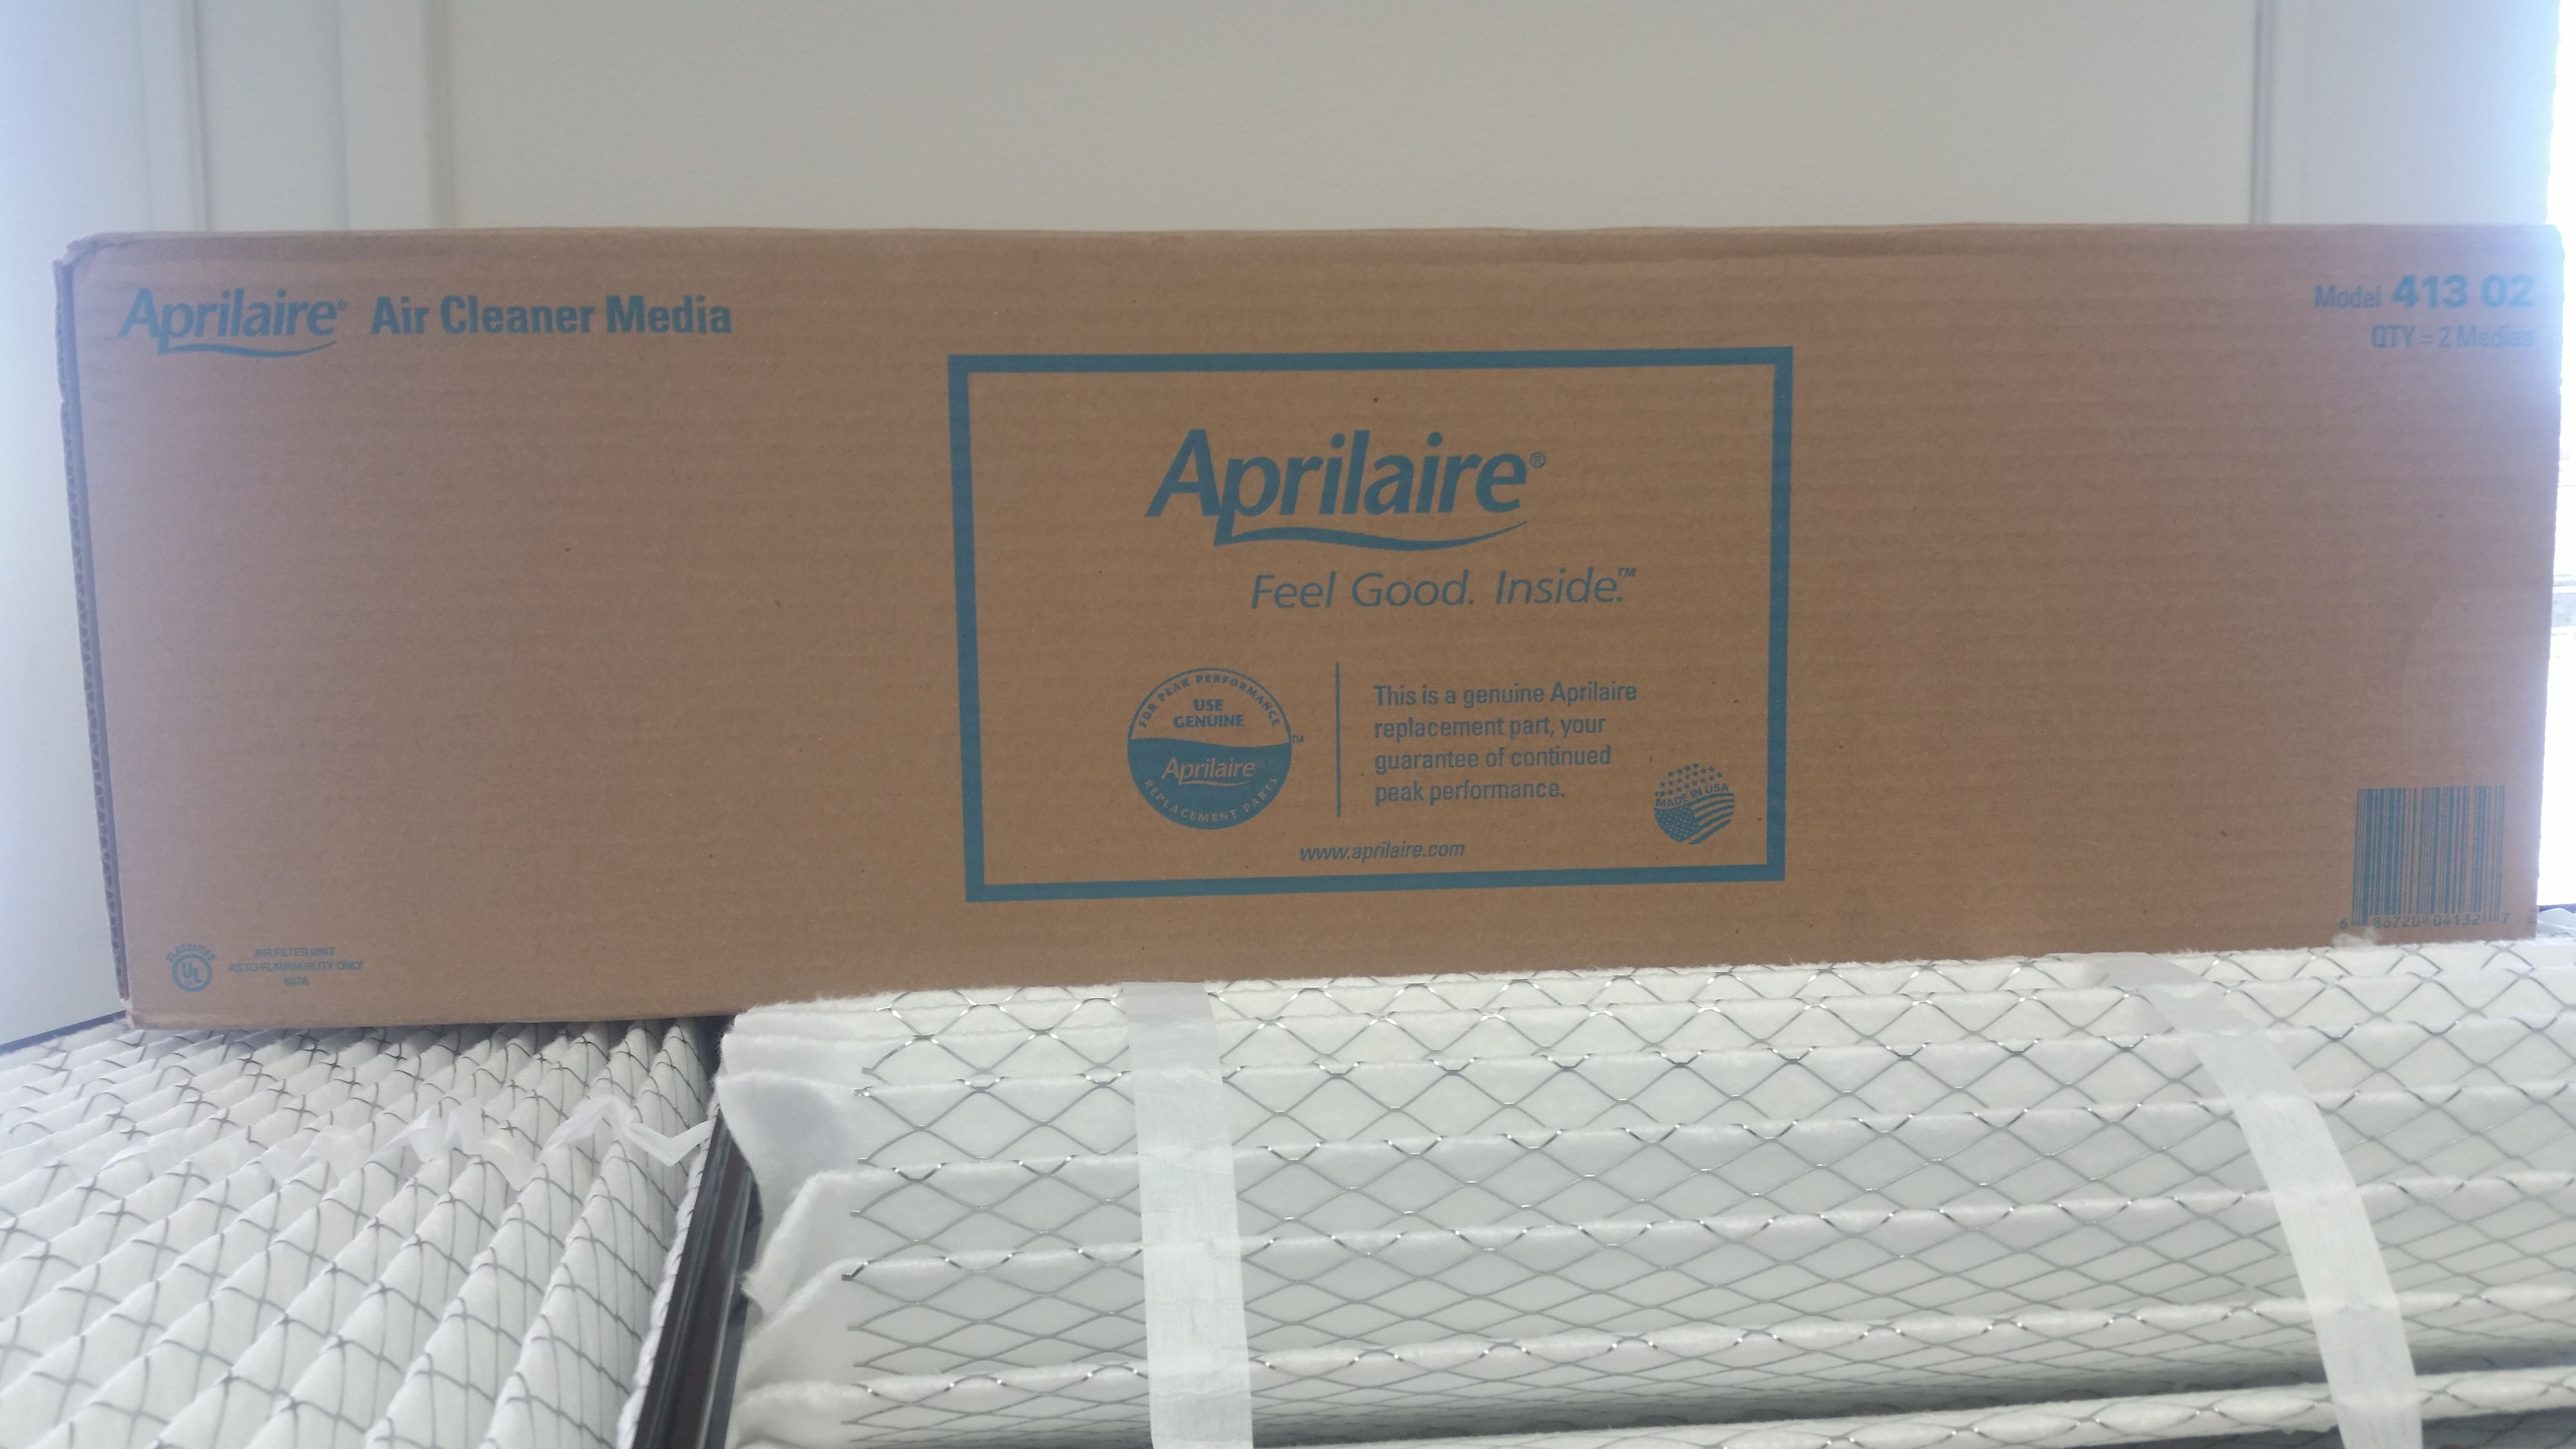 Top Aprilaire Filters Stores